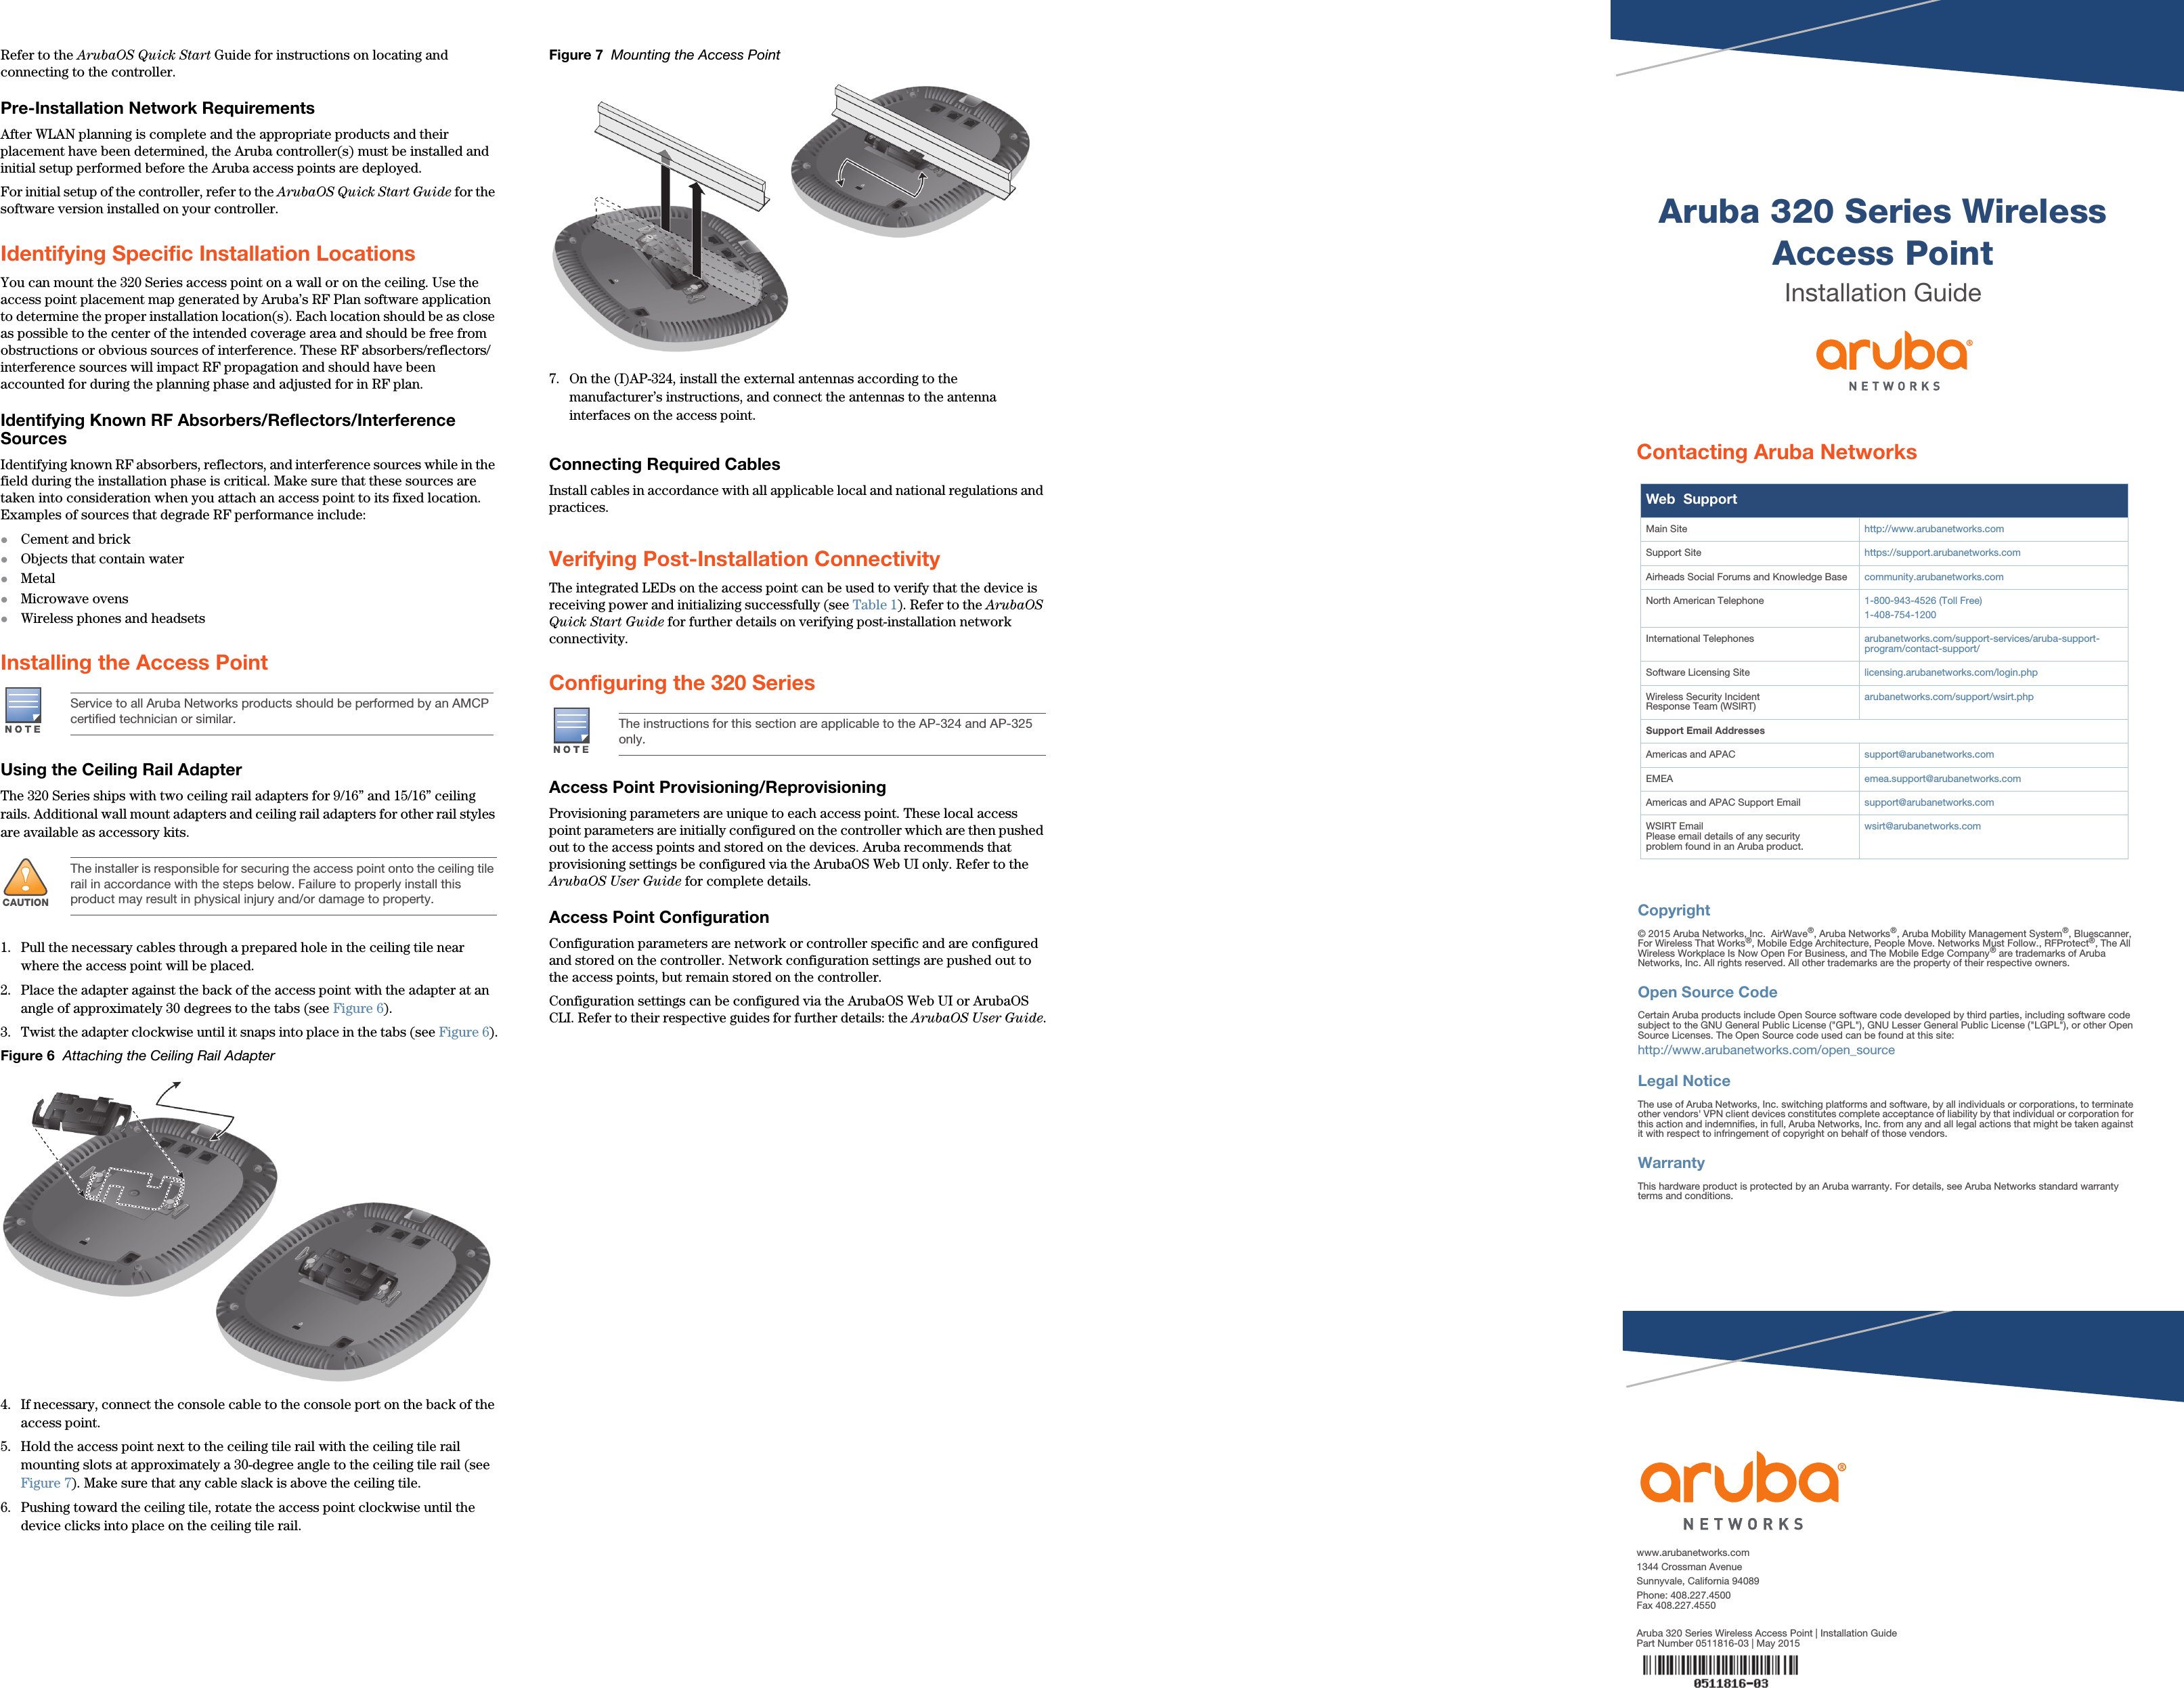 Aruba Networks APIN0324325 Wireless Access Point User Manual